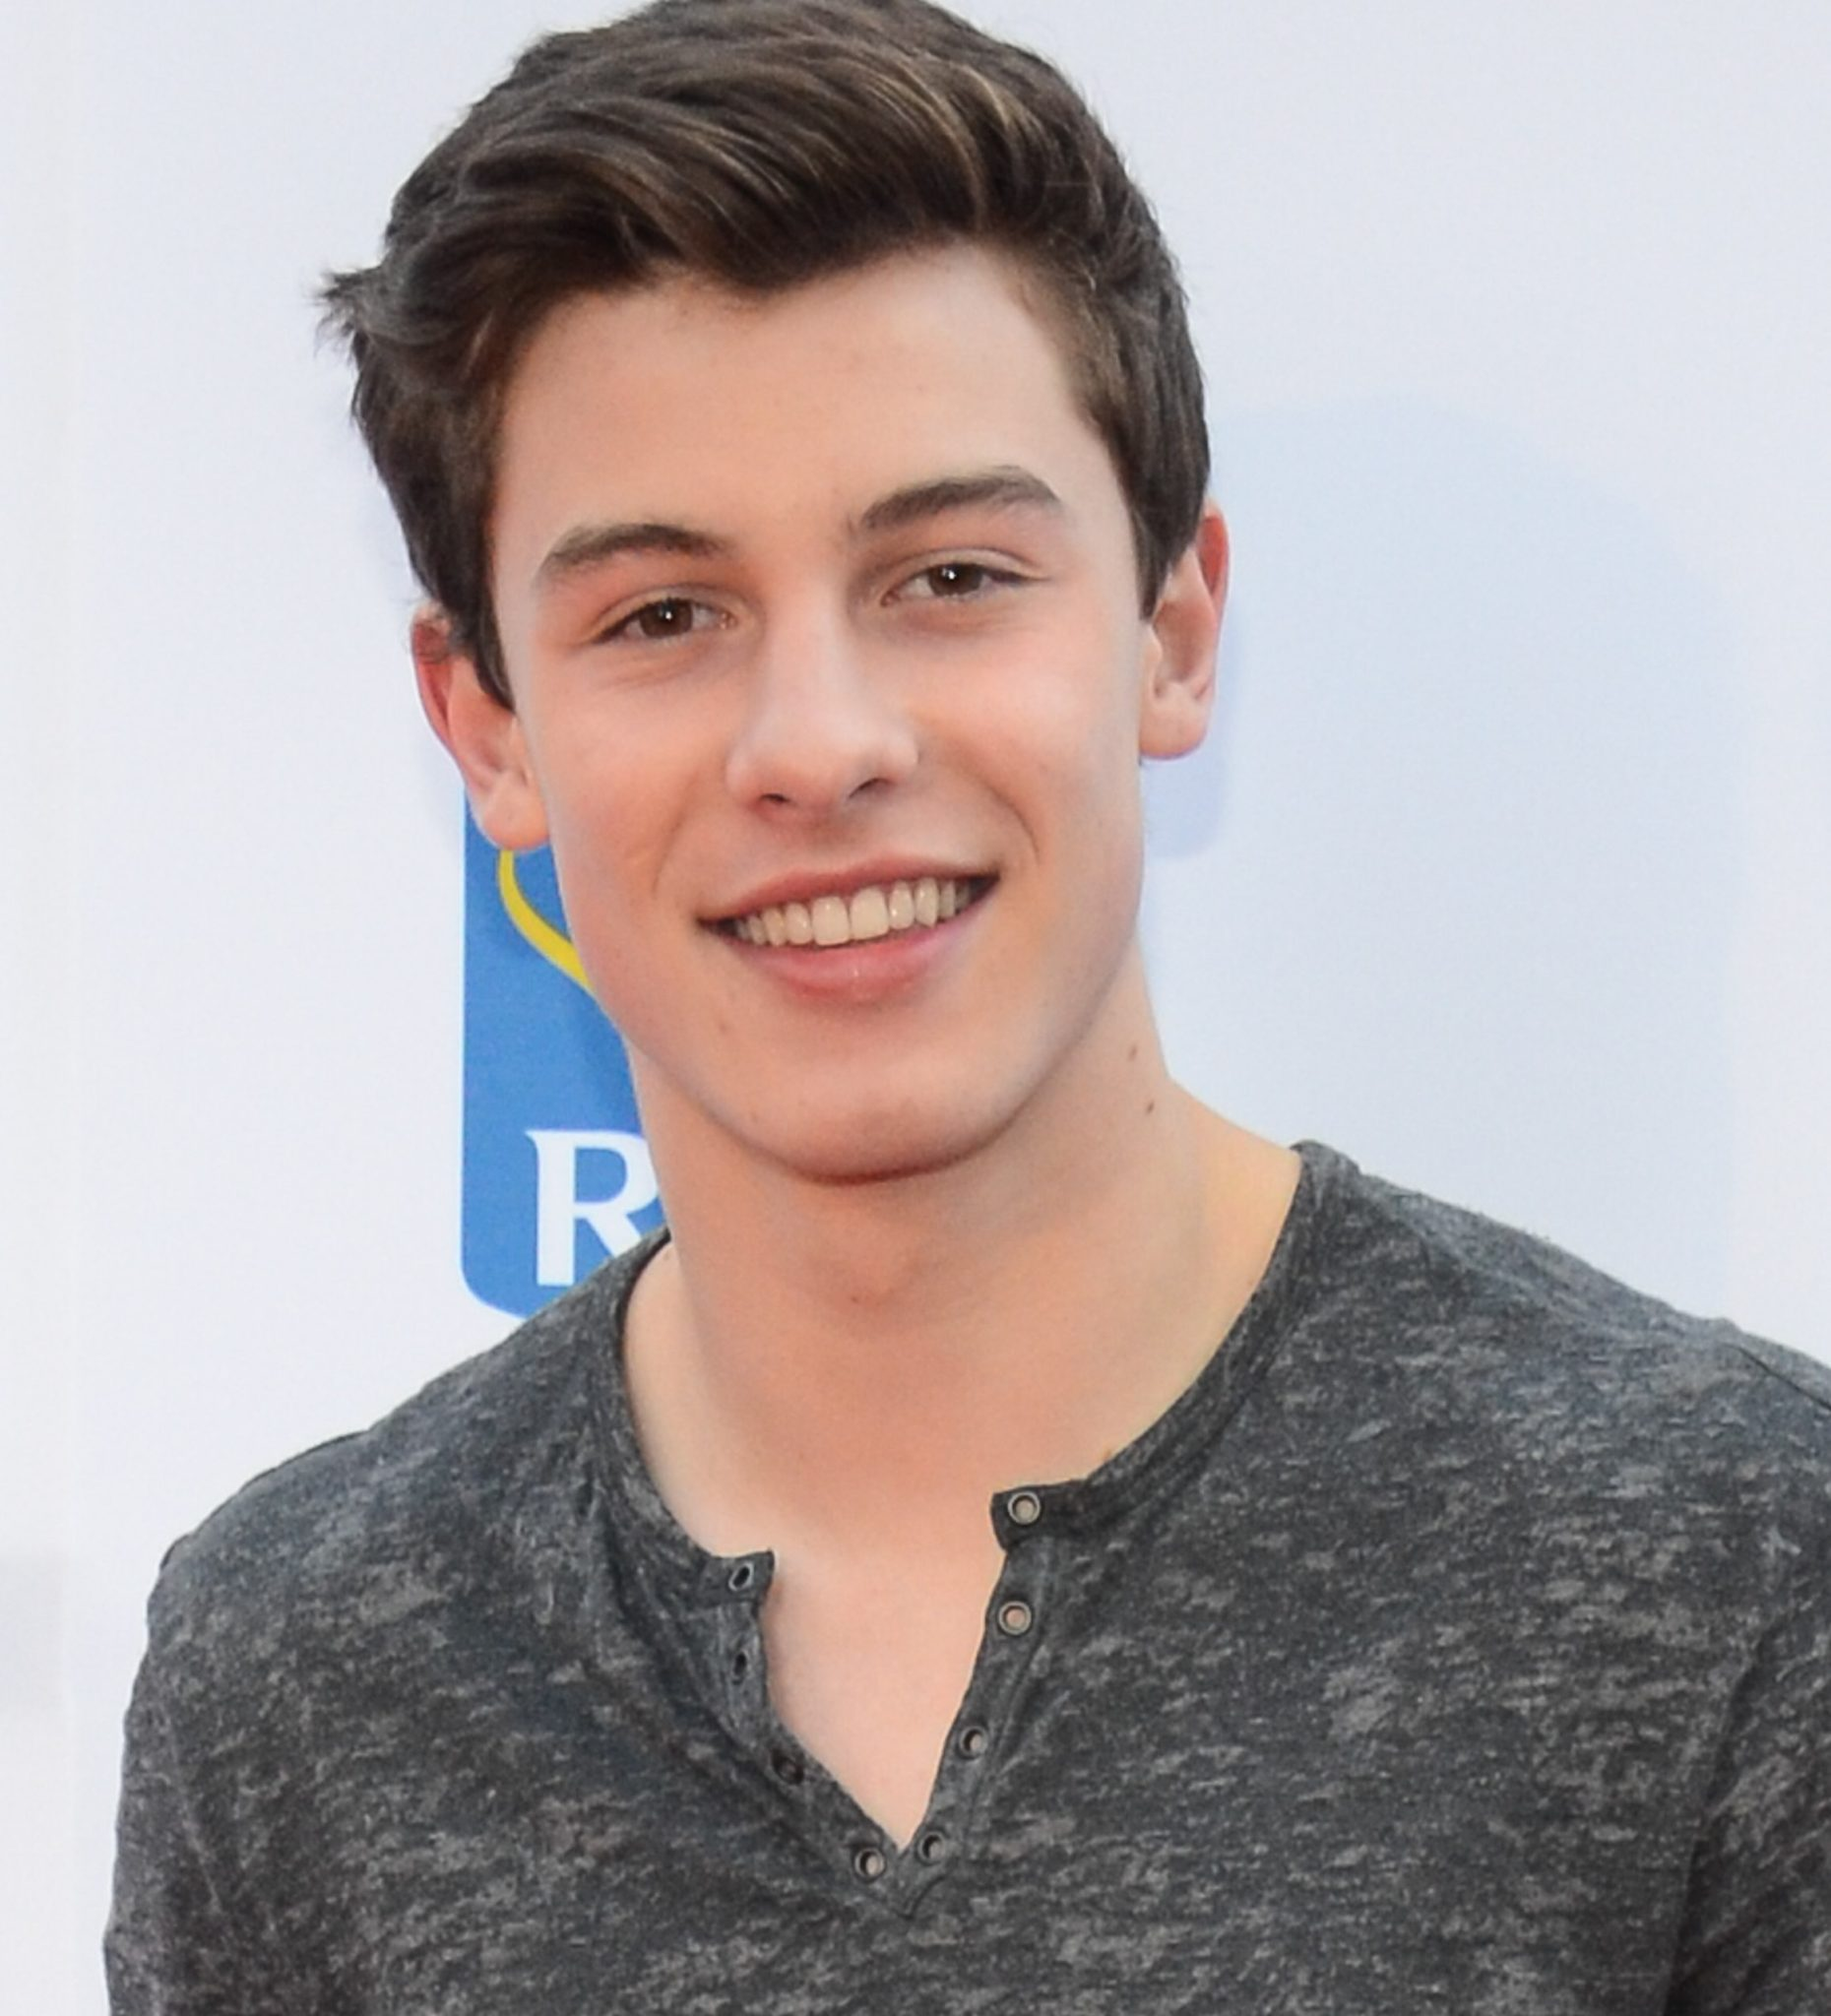 Pictures Of Shawn Mendes